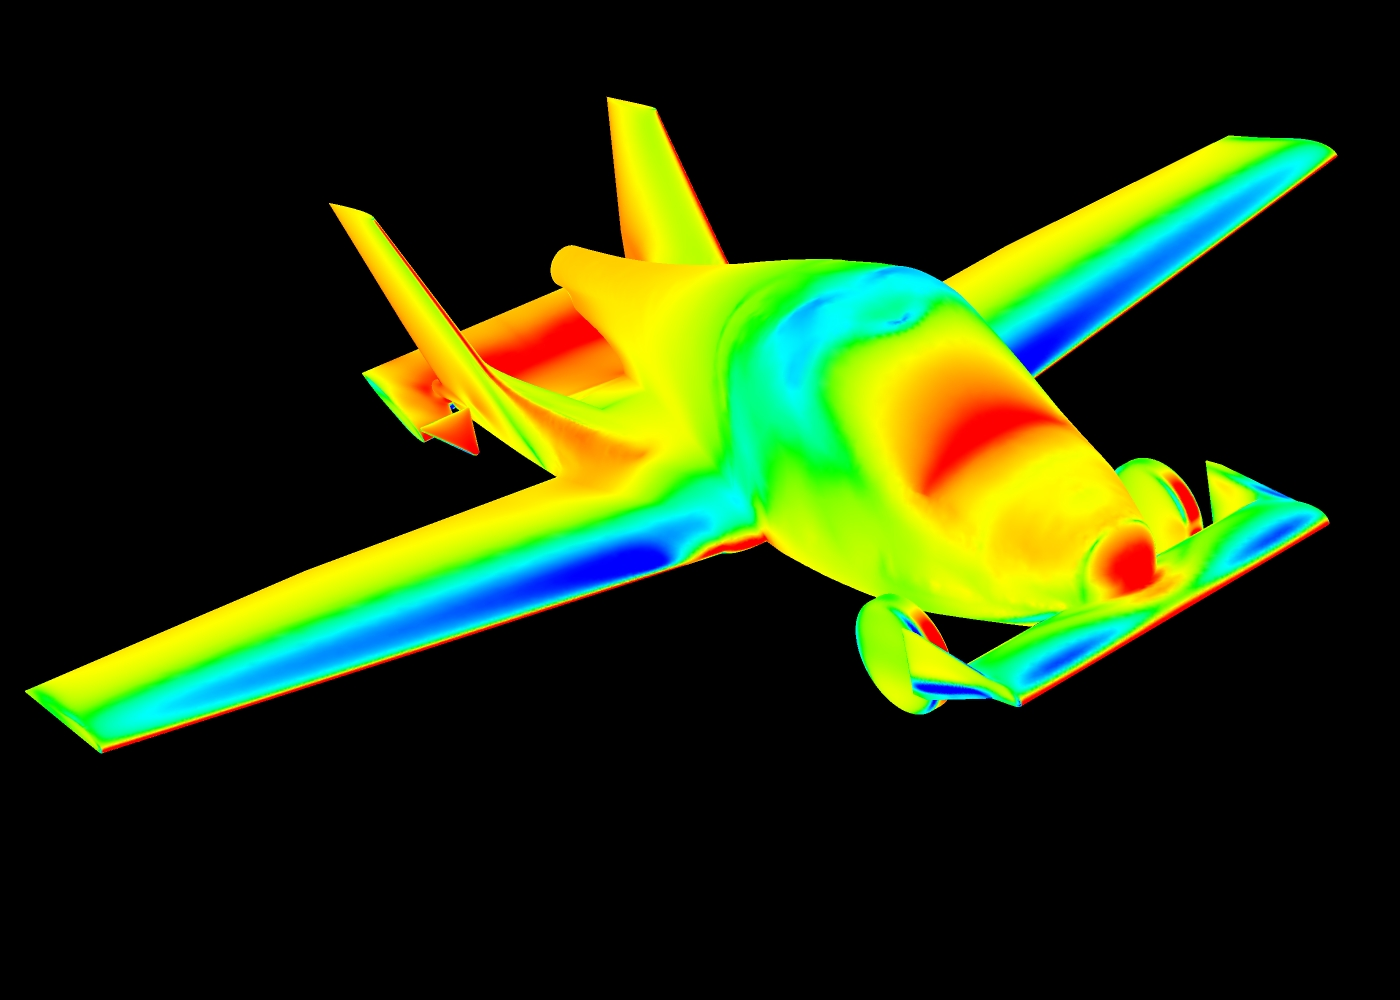 Terrafugias Roadable Aircraft Engineered With Virtual Prototyping Ansys Designer Rf Circuit Design And Simulation Software Applied From